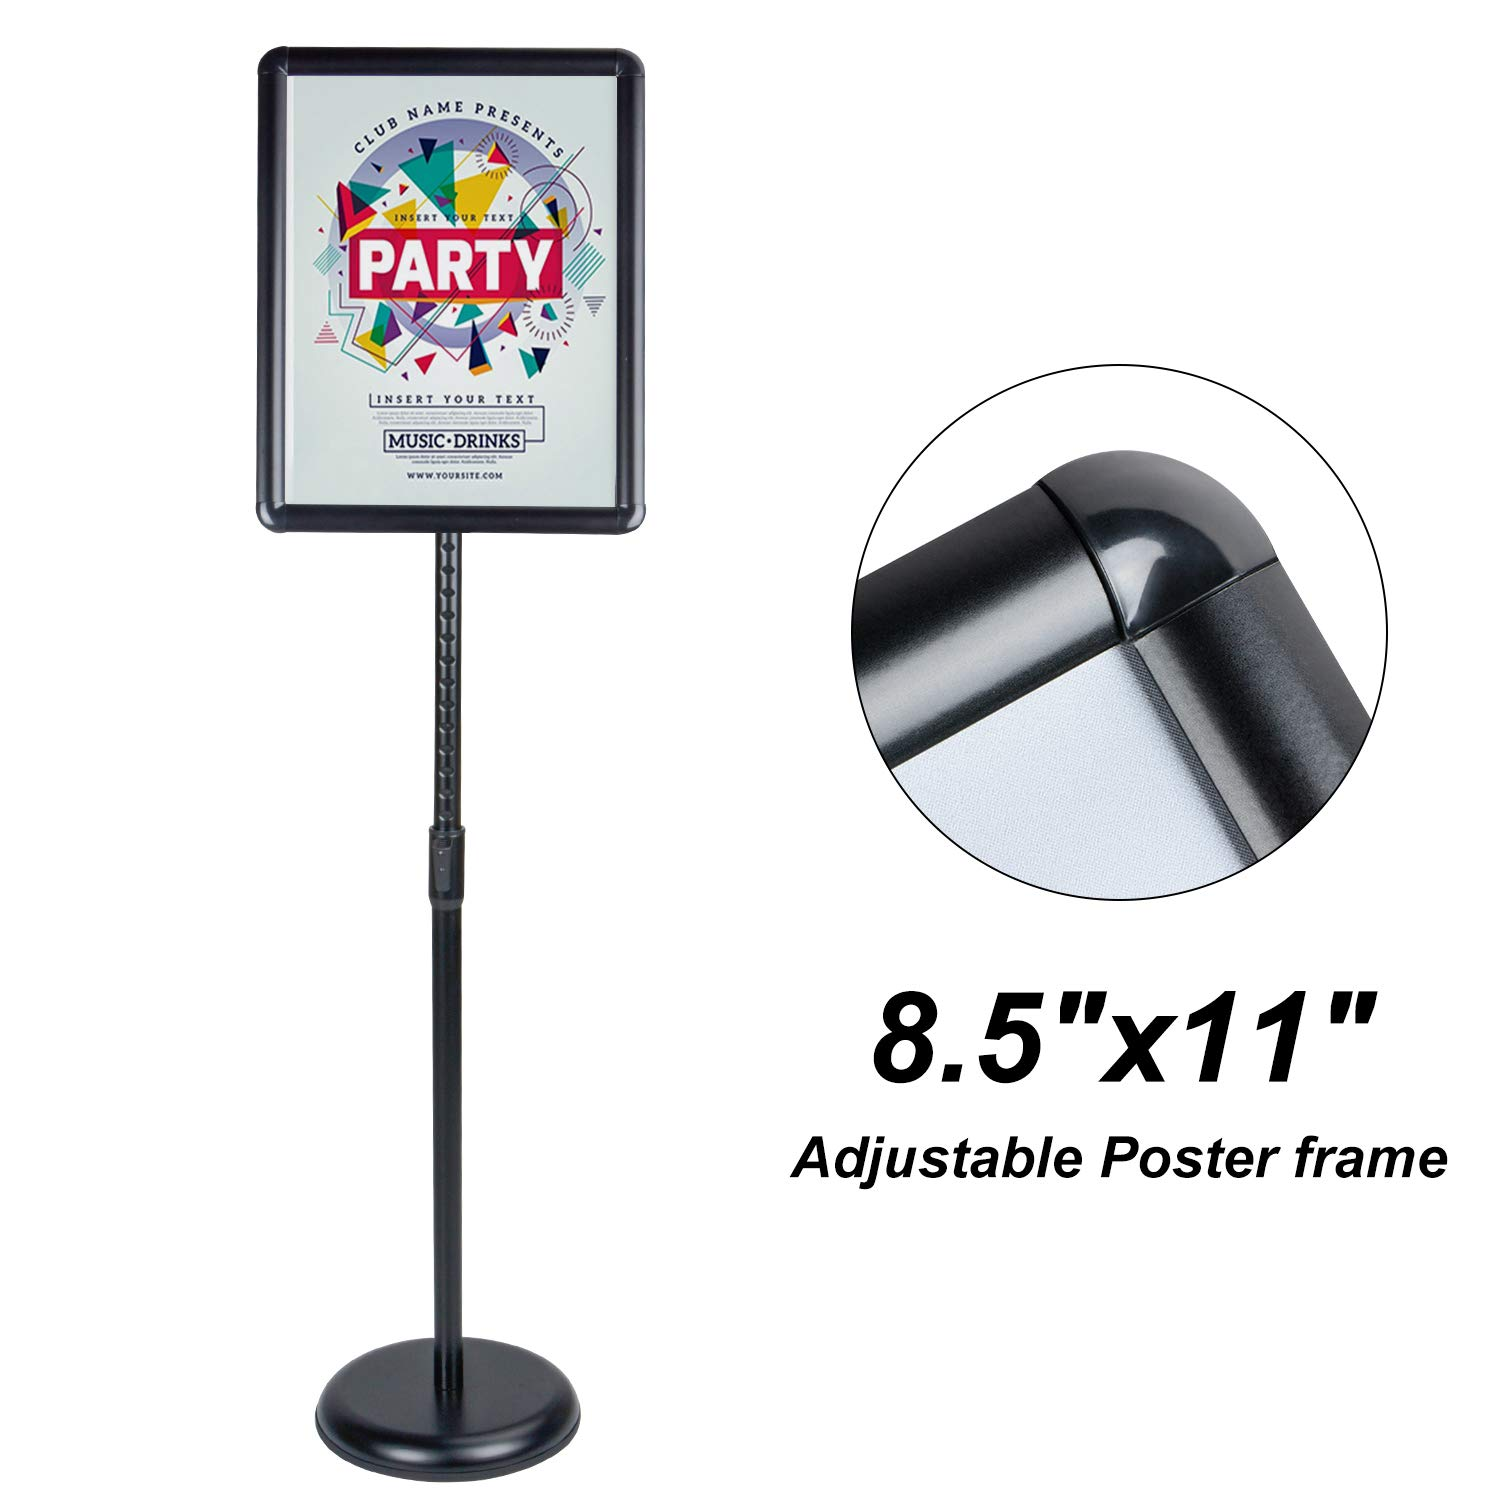 AkTop Adjustable Poster Sign Stand, 8.5 X 11 Inch Heavy Duty Pedestal Floor Standing Sign Holder, Black Snap-Open Aluminum Frame with Safety Rounded Corner by AkTop